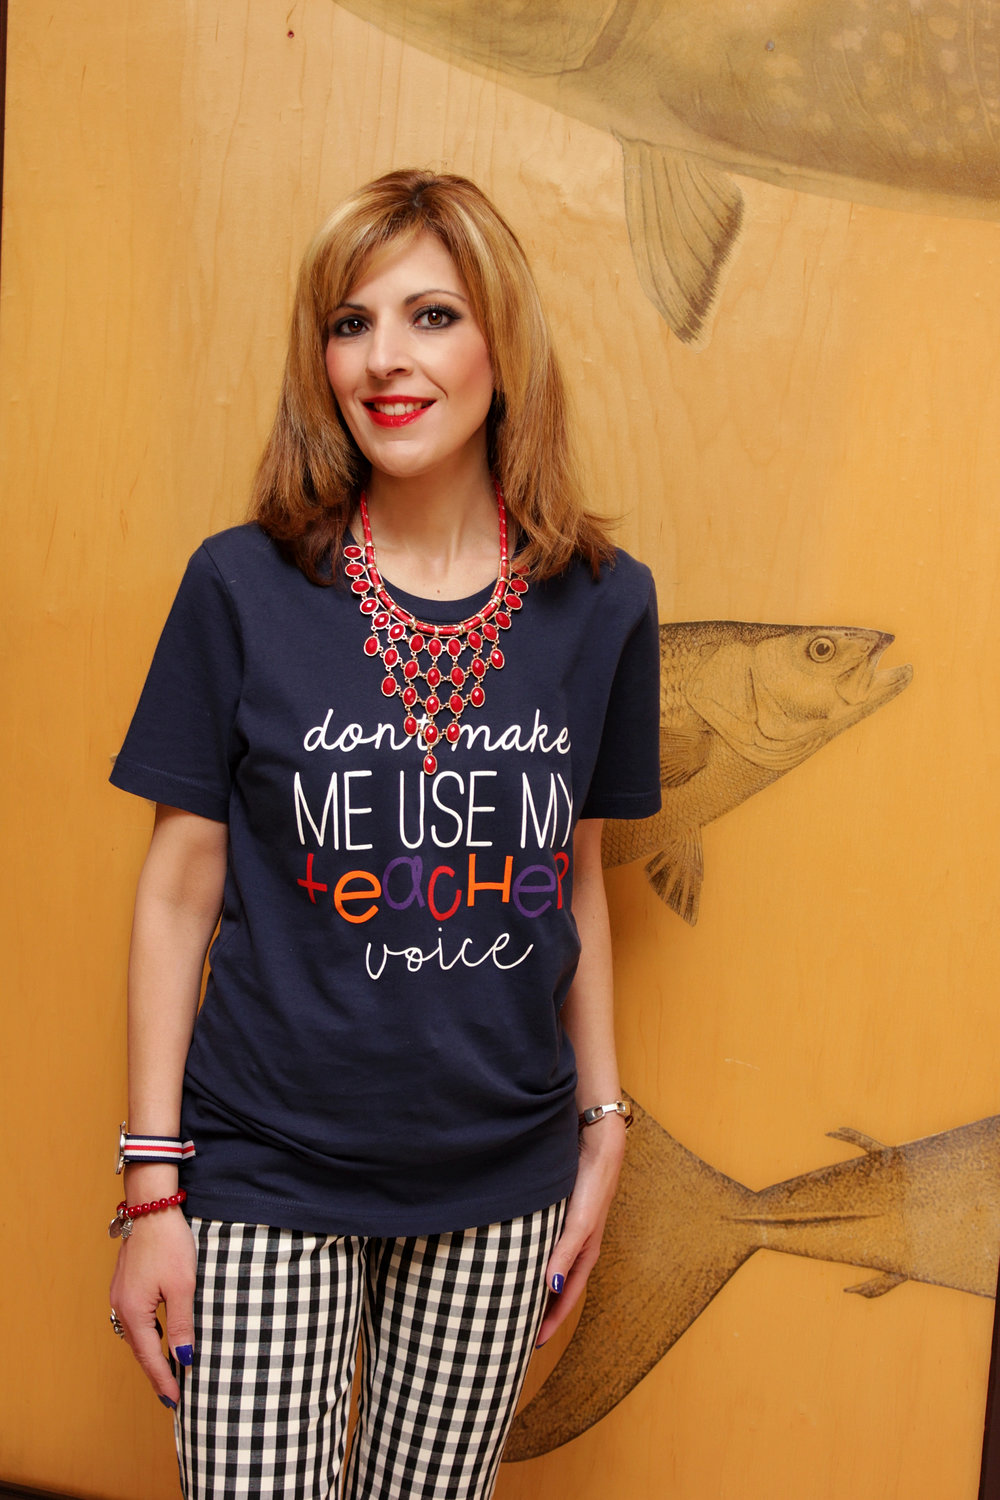 https://thewrightstuffchics.com/collections/t-shirts/products/dont-make-me-use-my-teacher-voice-shirt